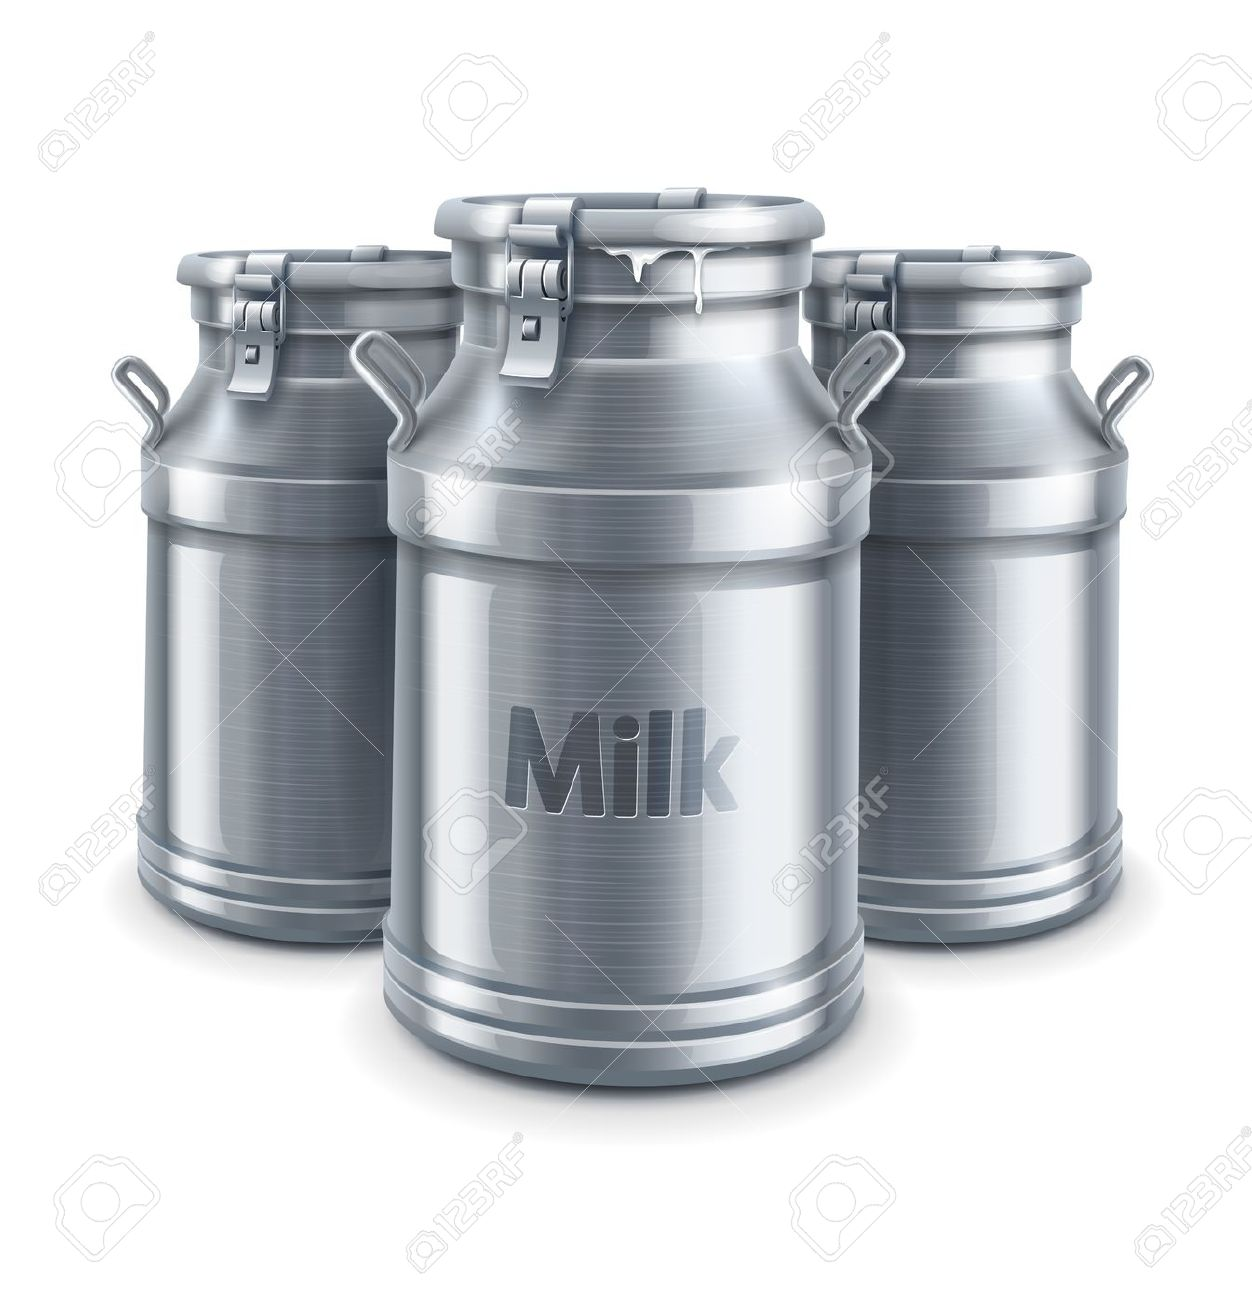 338 Tank Milk Stock Vector Illustration And Royalty Free Tank Milk.